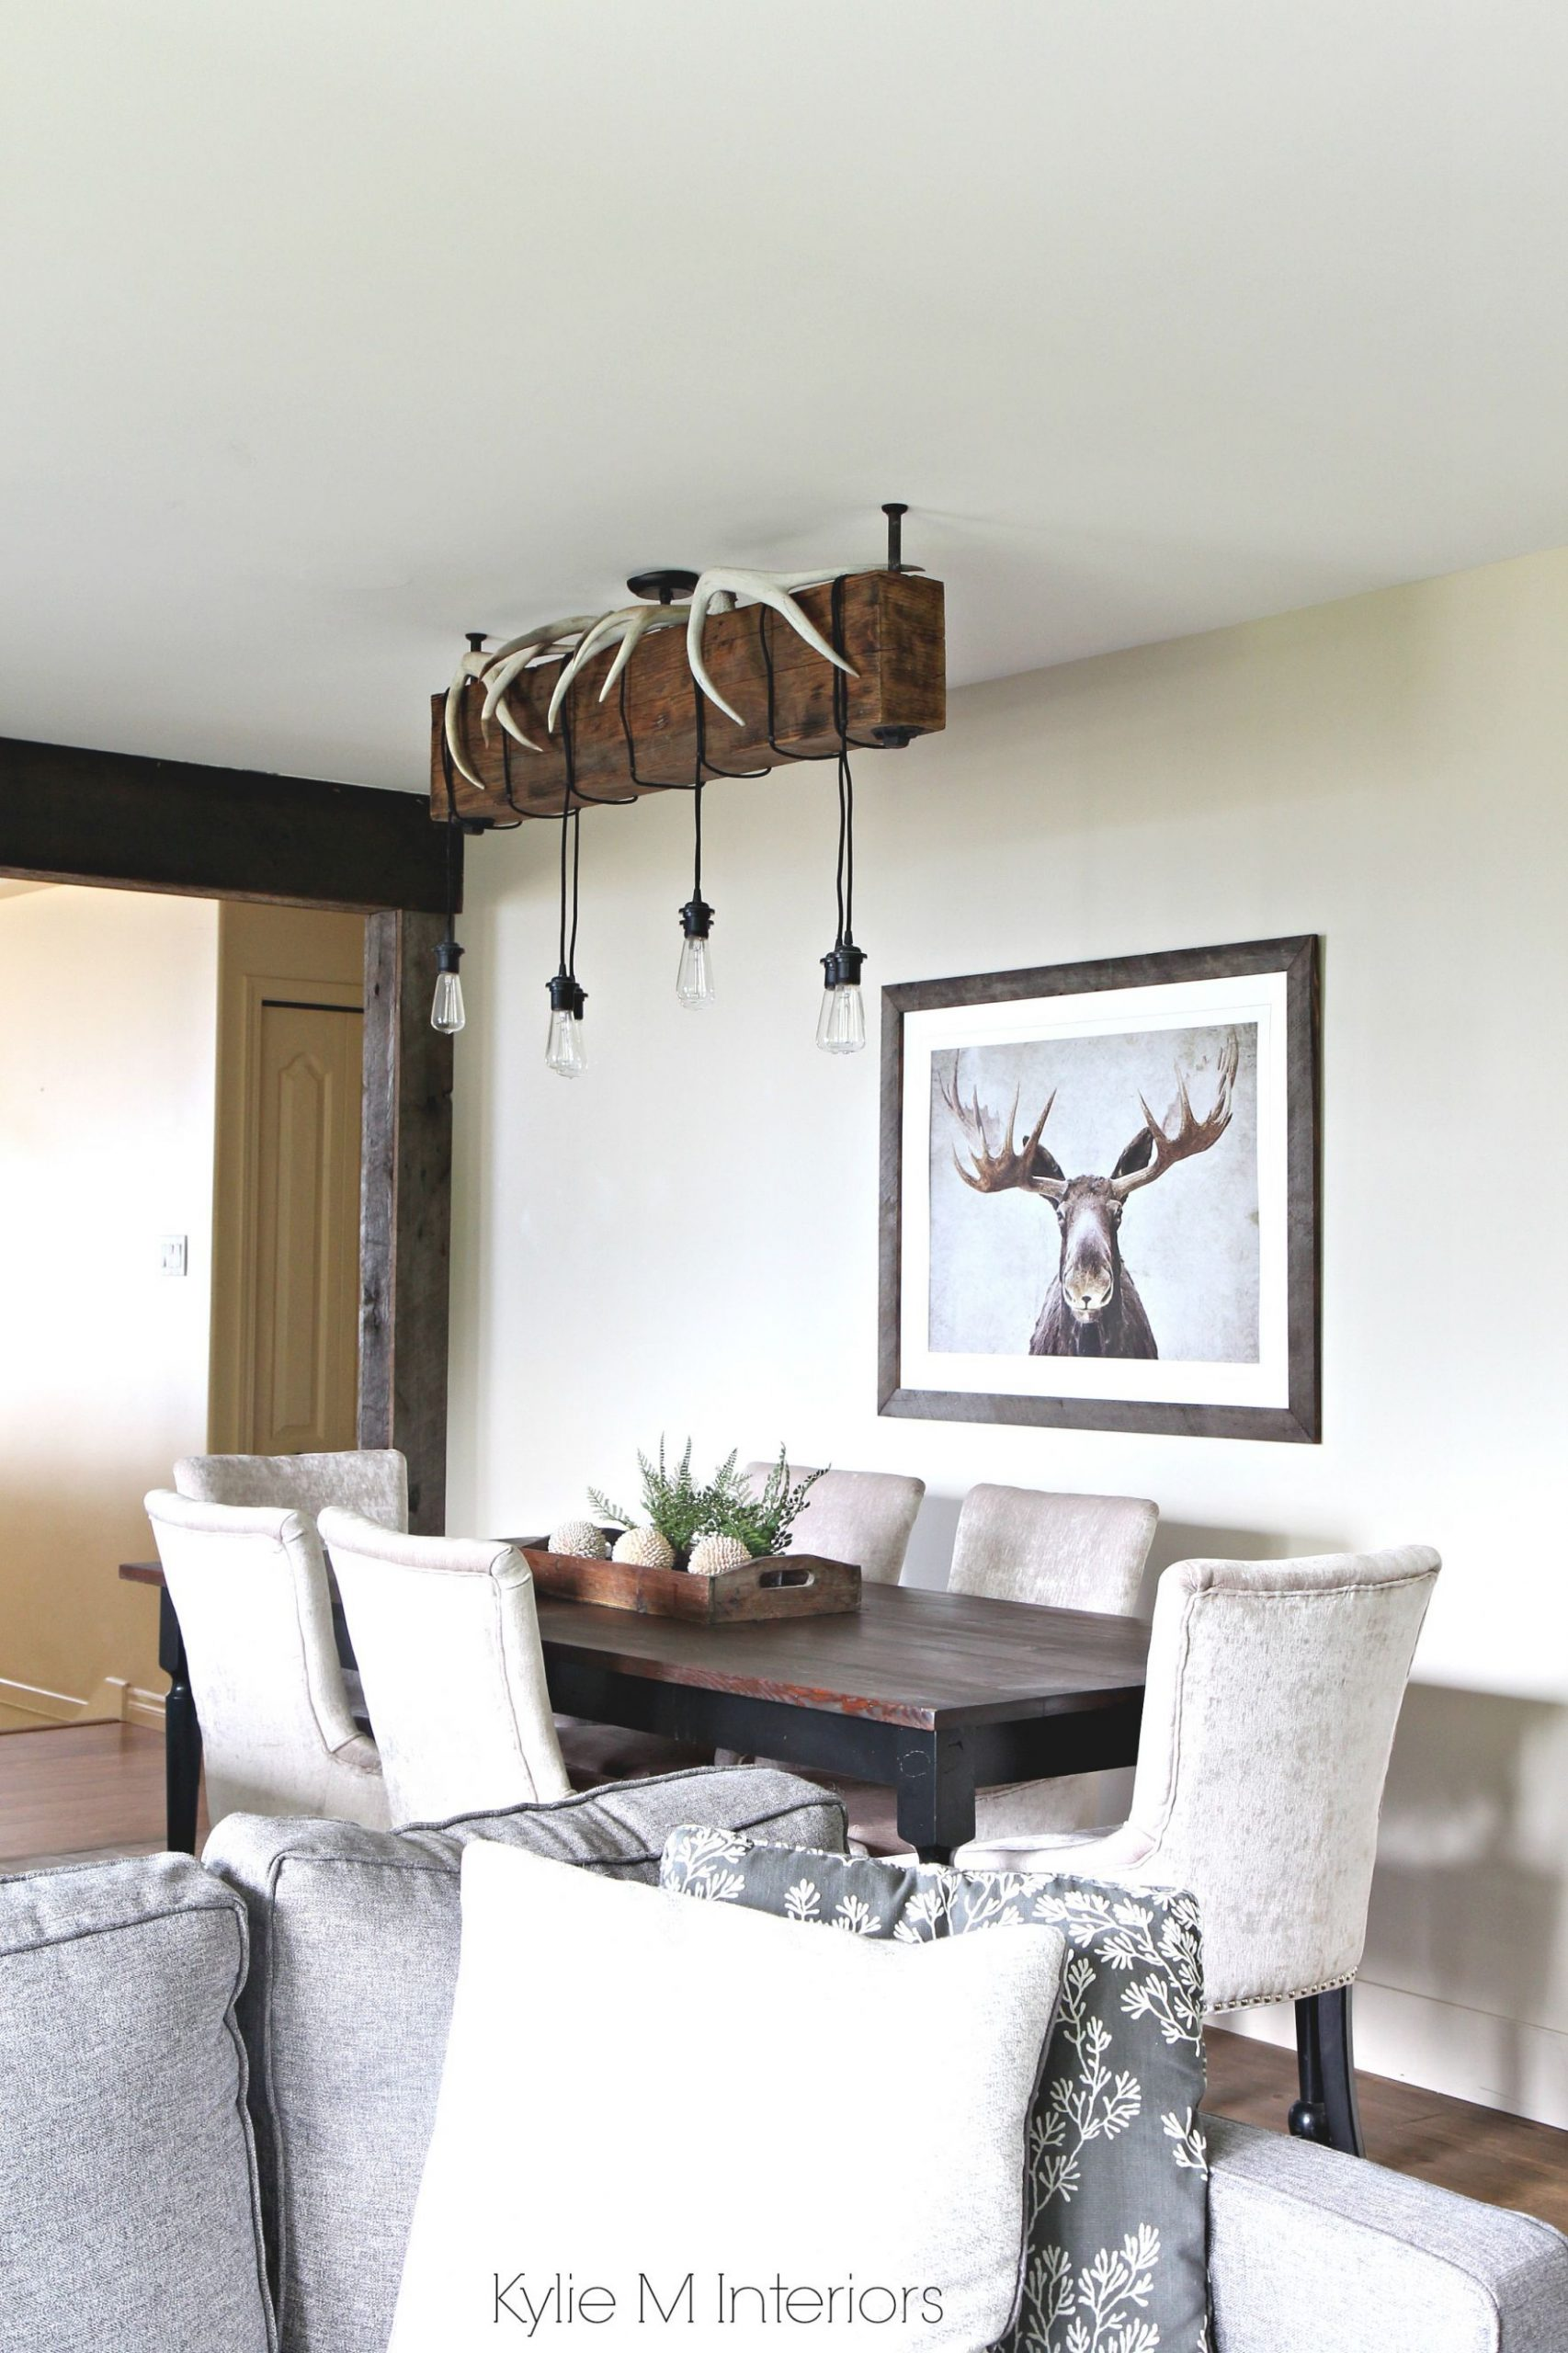 Rustic Country Or Hunting Decor In A Dining Room. Benjamin pertaining to 10+ Unique Gallery Hunting Decor For Living Room